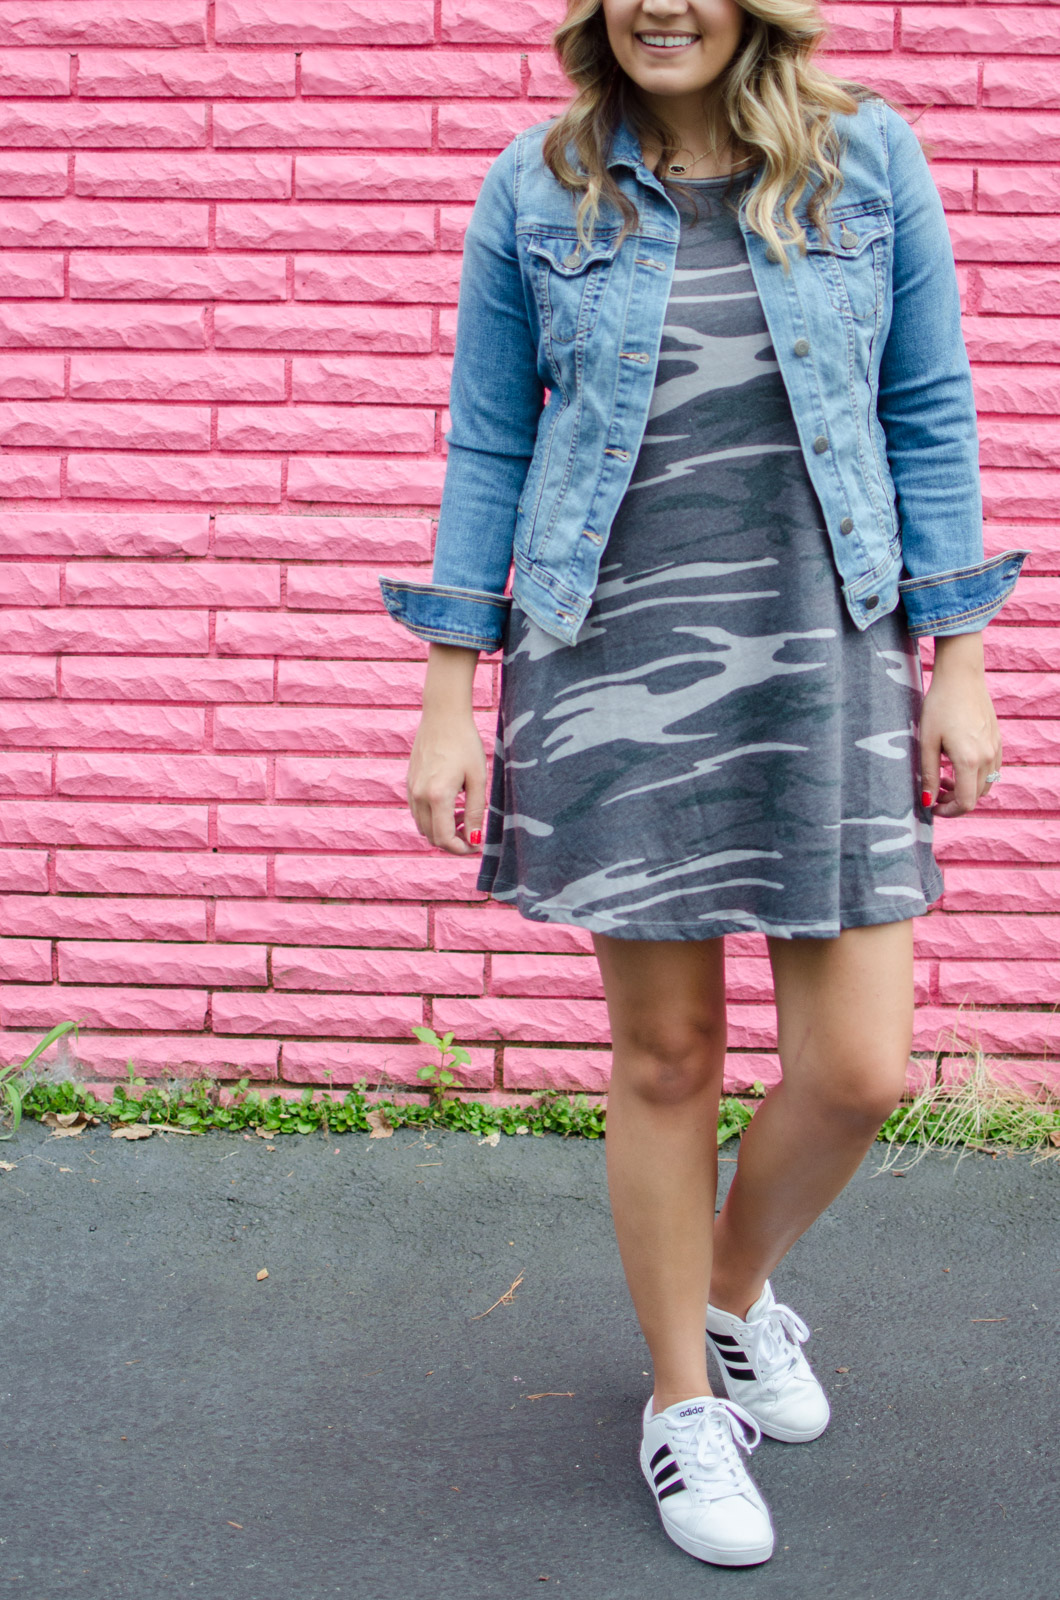 fall outfit idea - camo tshirt dress | For more cute Fall outfits, go to bylaurenm.com!